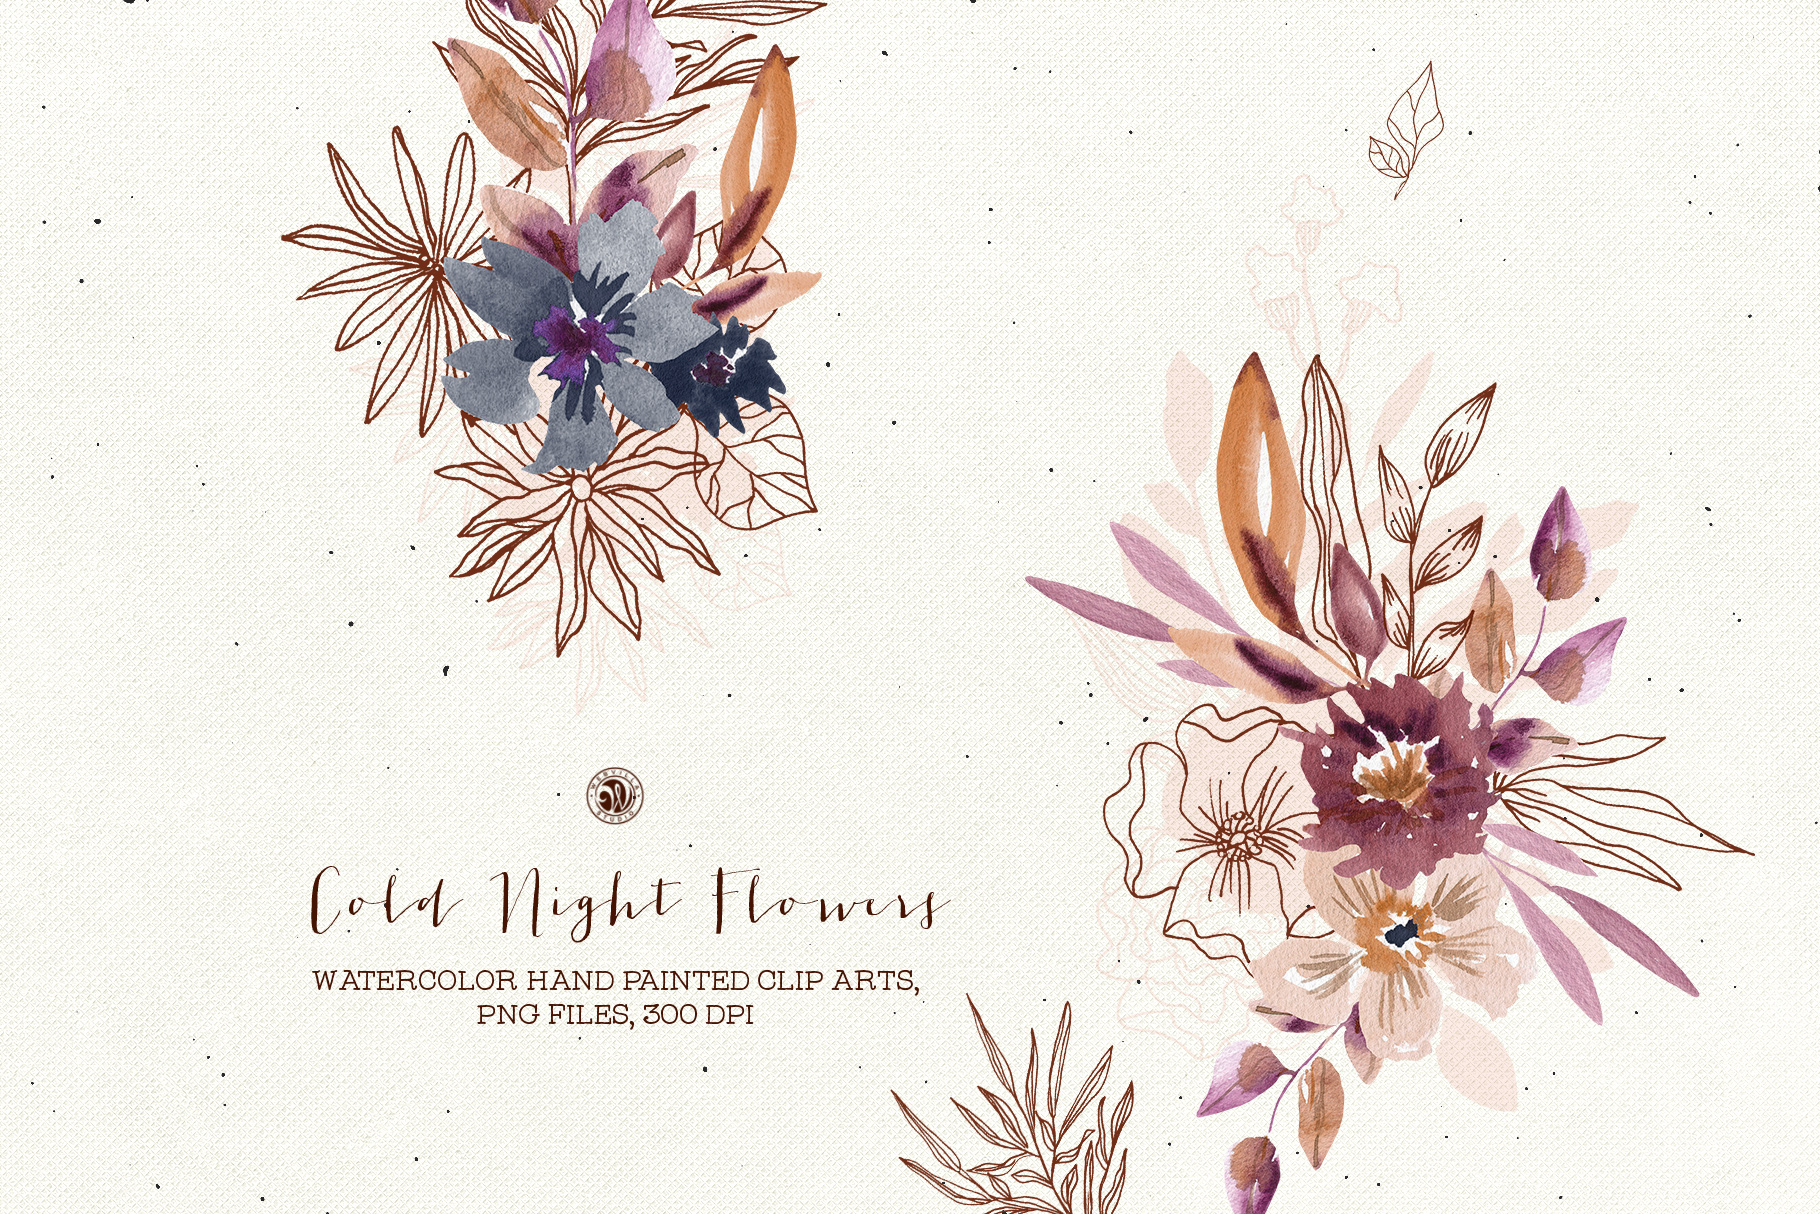 Cold Night Flowers - Price $15